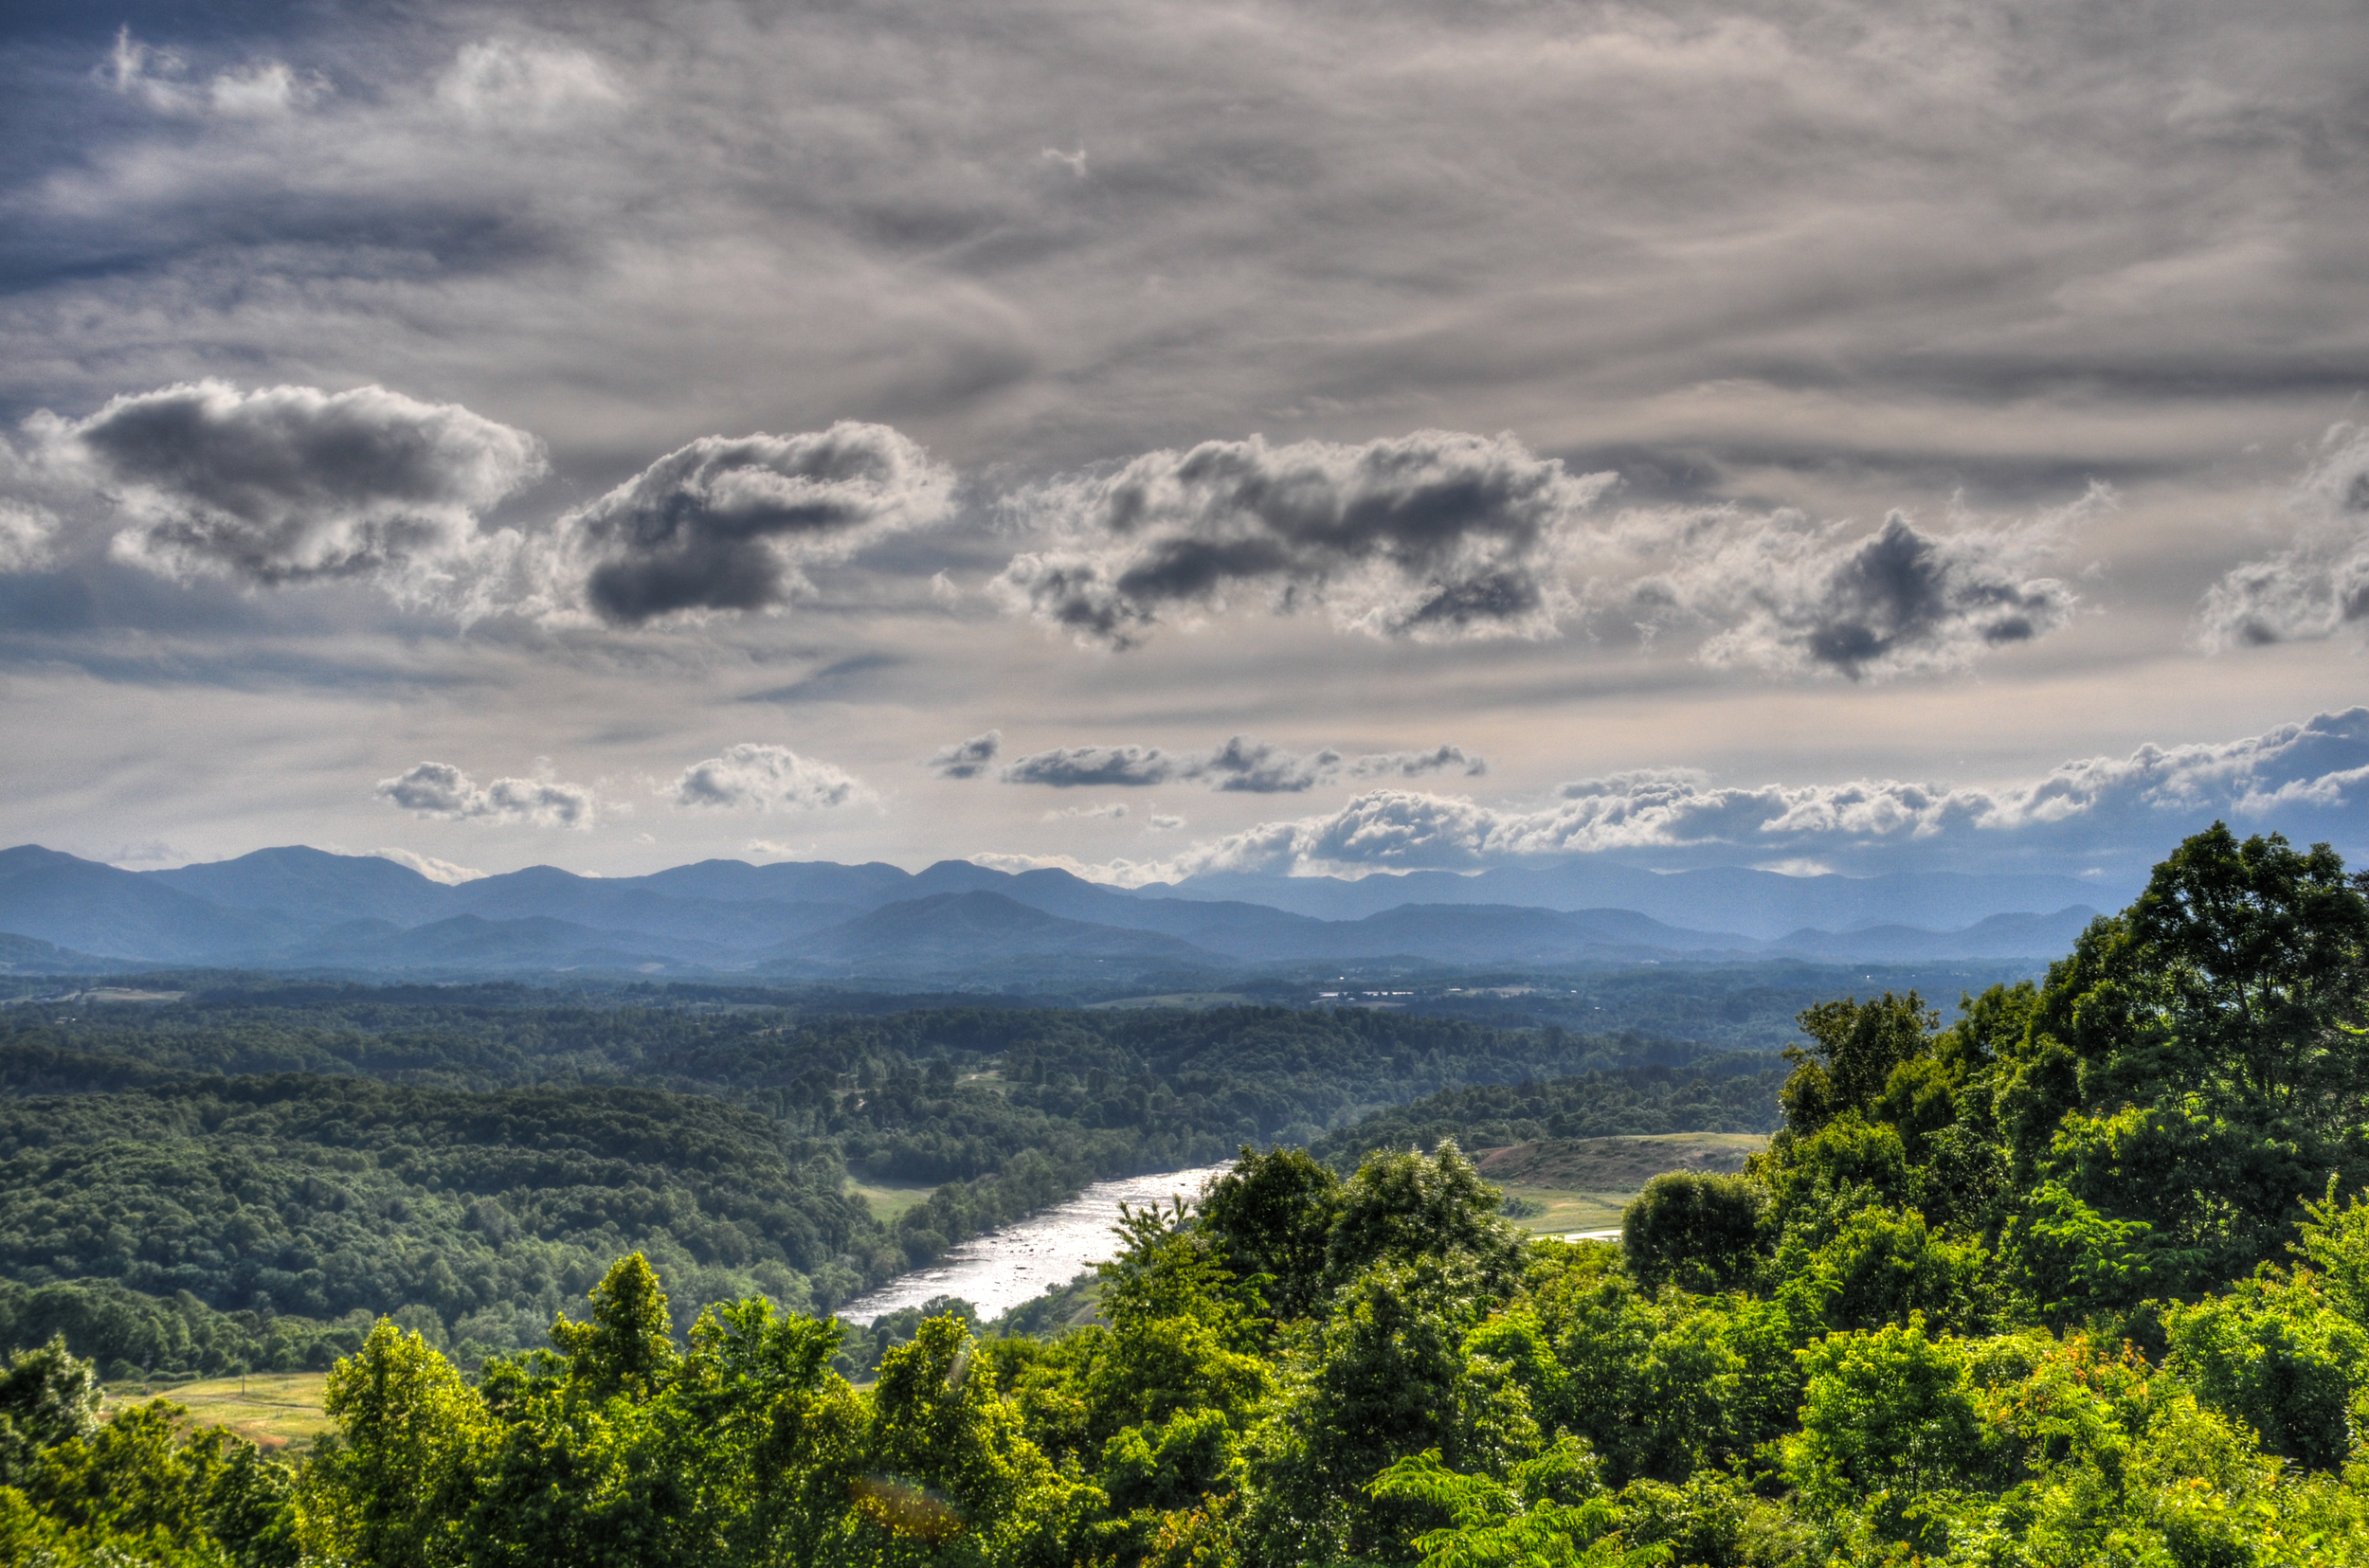 View from our campsite overlooking the Blue Ridge Mountains and the French Broad River north of Asheville, North Carolina